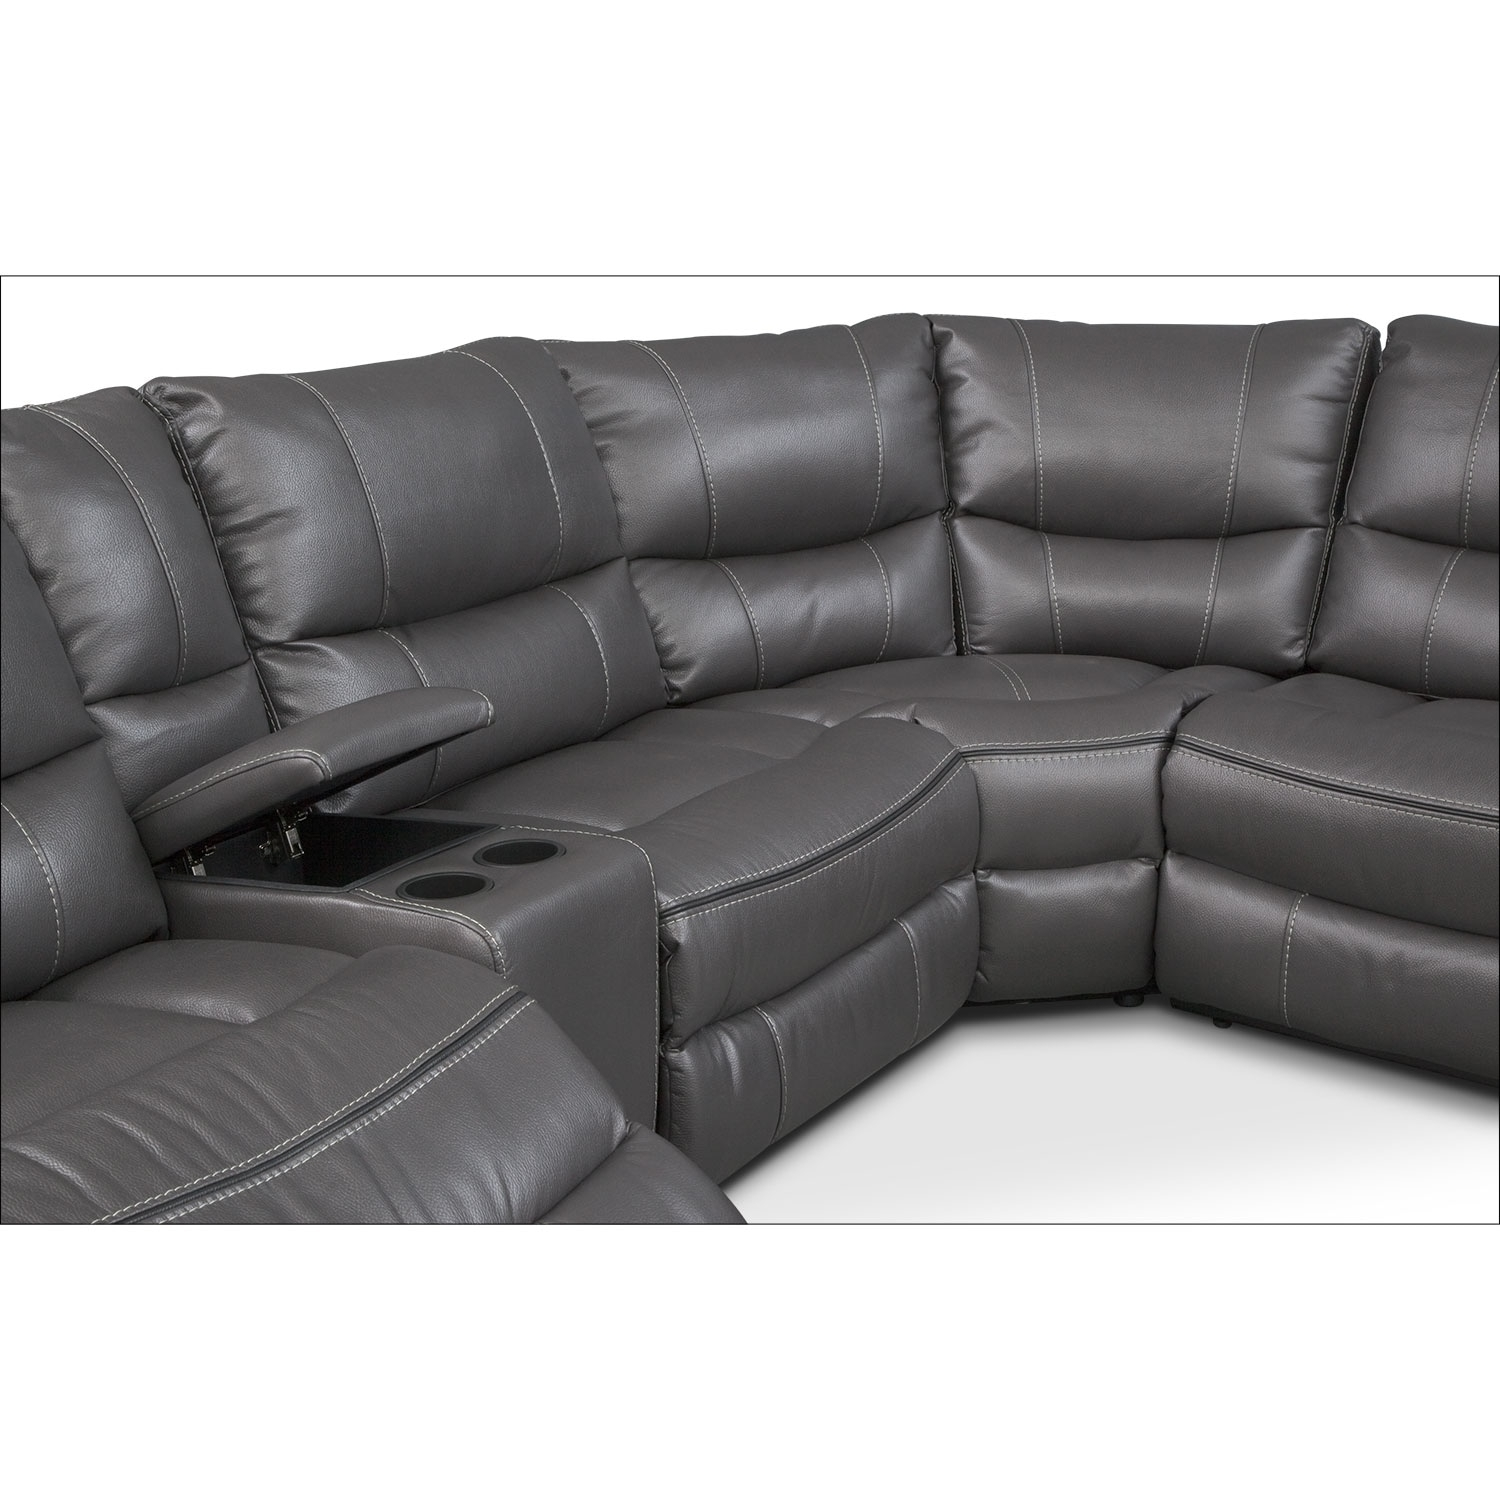 Orlando 6 Piece Power Reclining Sectional With 1 Stationary Chair Throughout Orlando Sectional Sofas (Image 4 of 10)